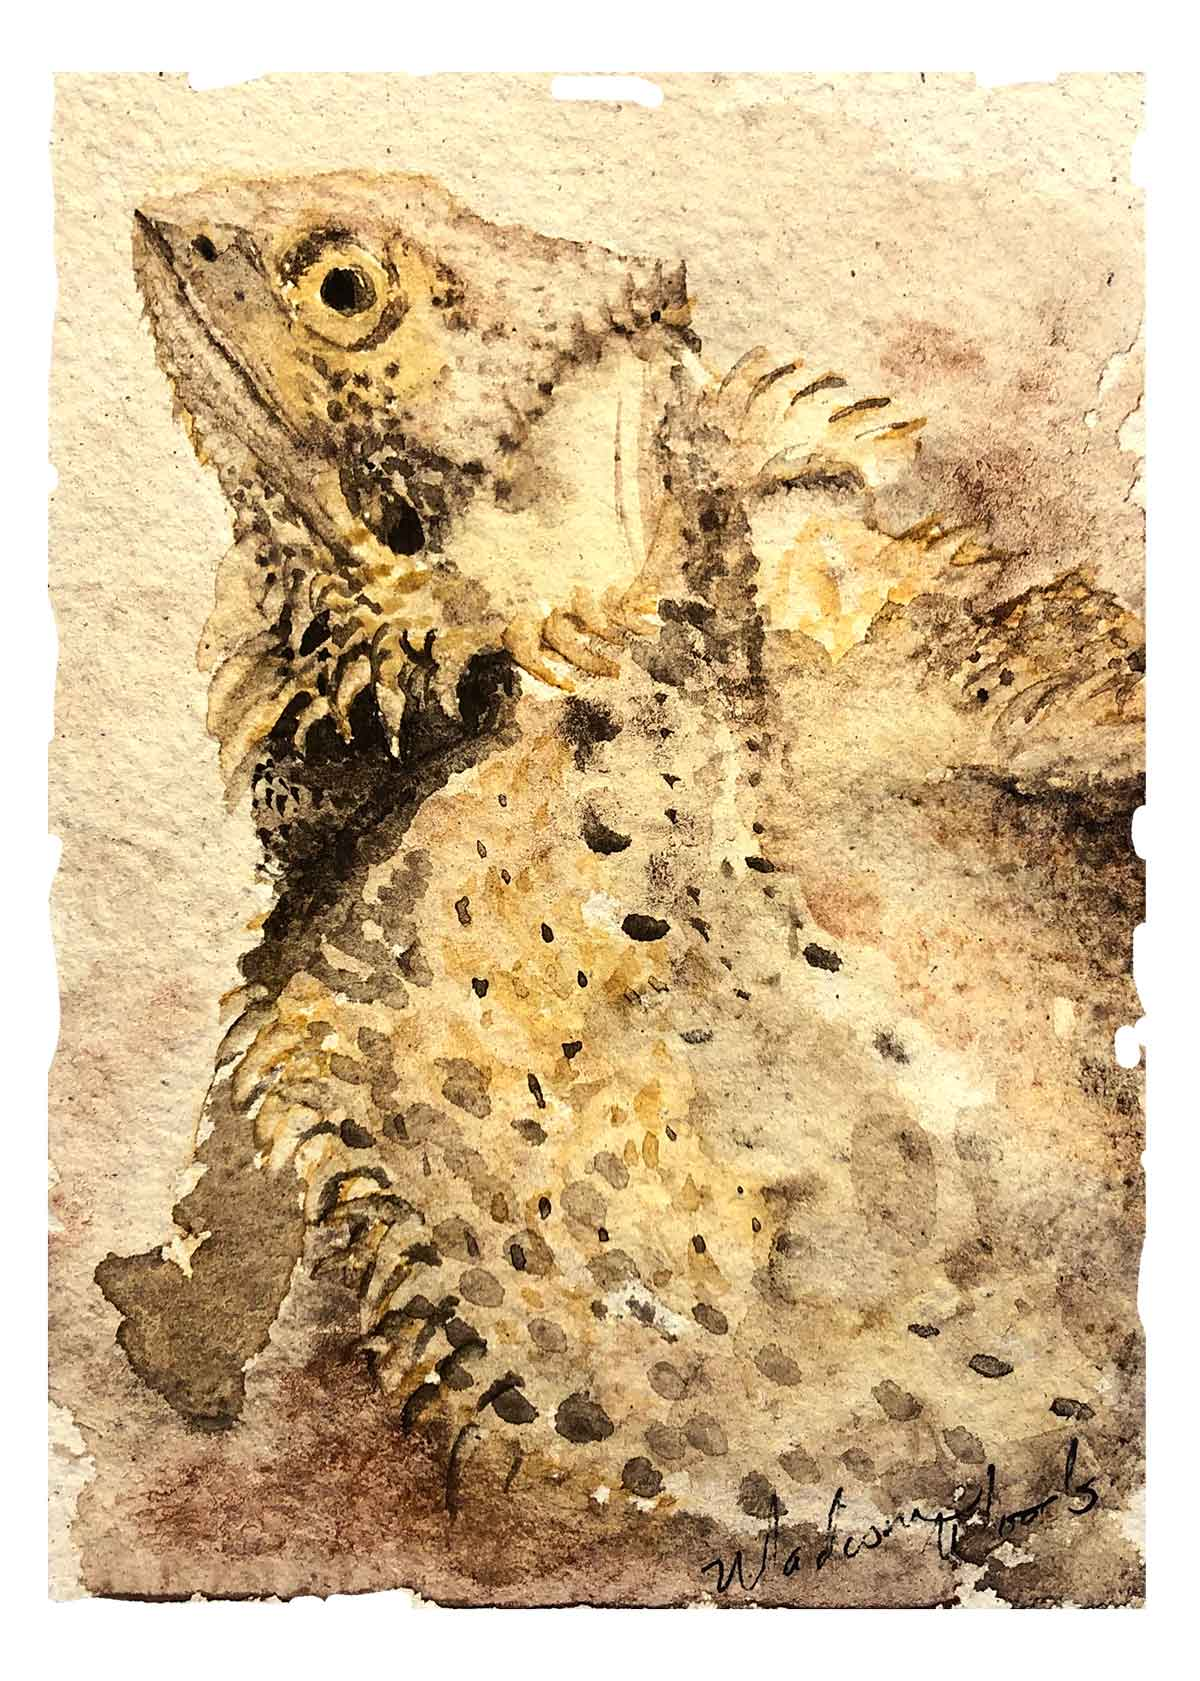 Petunia, the Bearded Dragon in Ozark pigments.